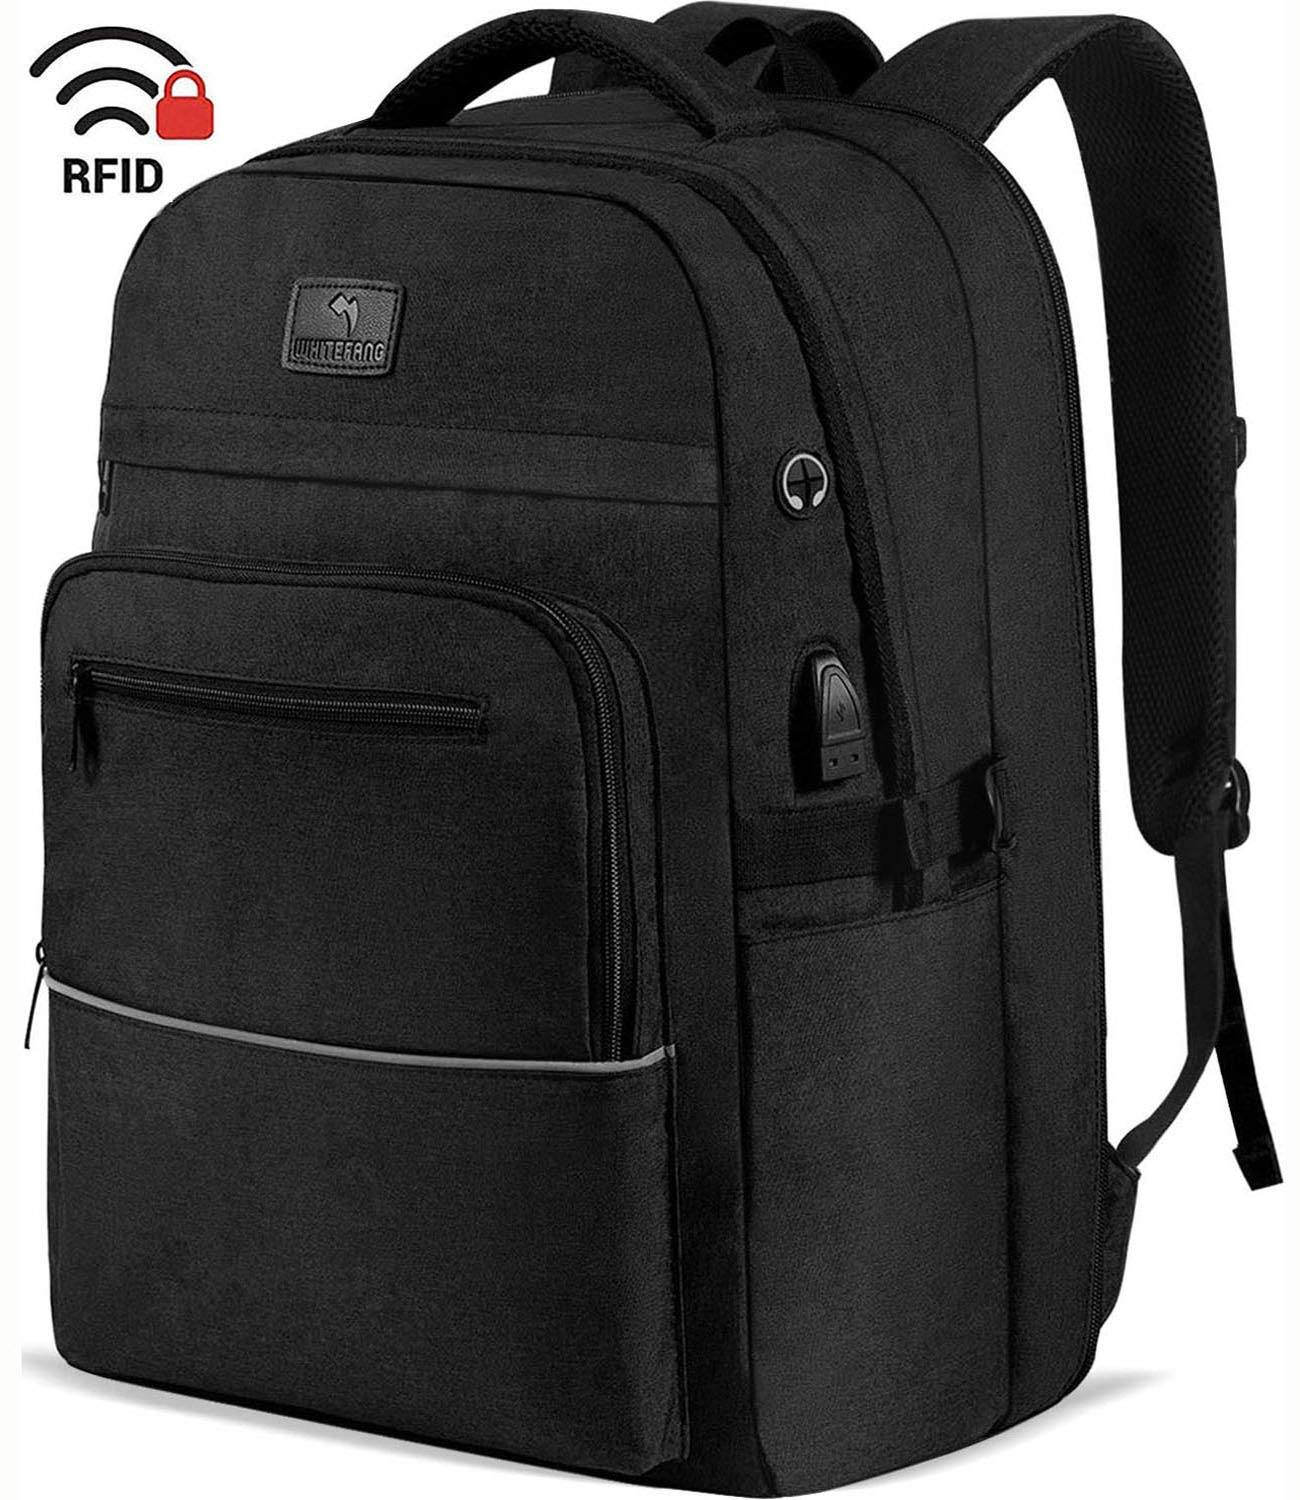 WhiteFang 17.3 Inch Laptop Backpack,TSA Friendly Business Travel Laptop Backpack with USB Charging Port, RFID Pockets Water Resistant Big School Backpack for Women & Men Fits 17.3 Inch Laptop-Black by WhiteFang